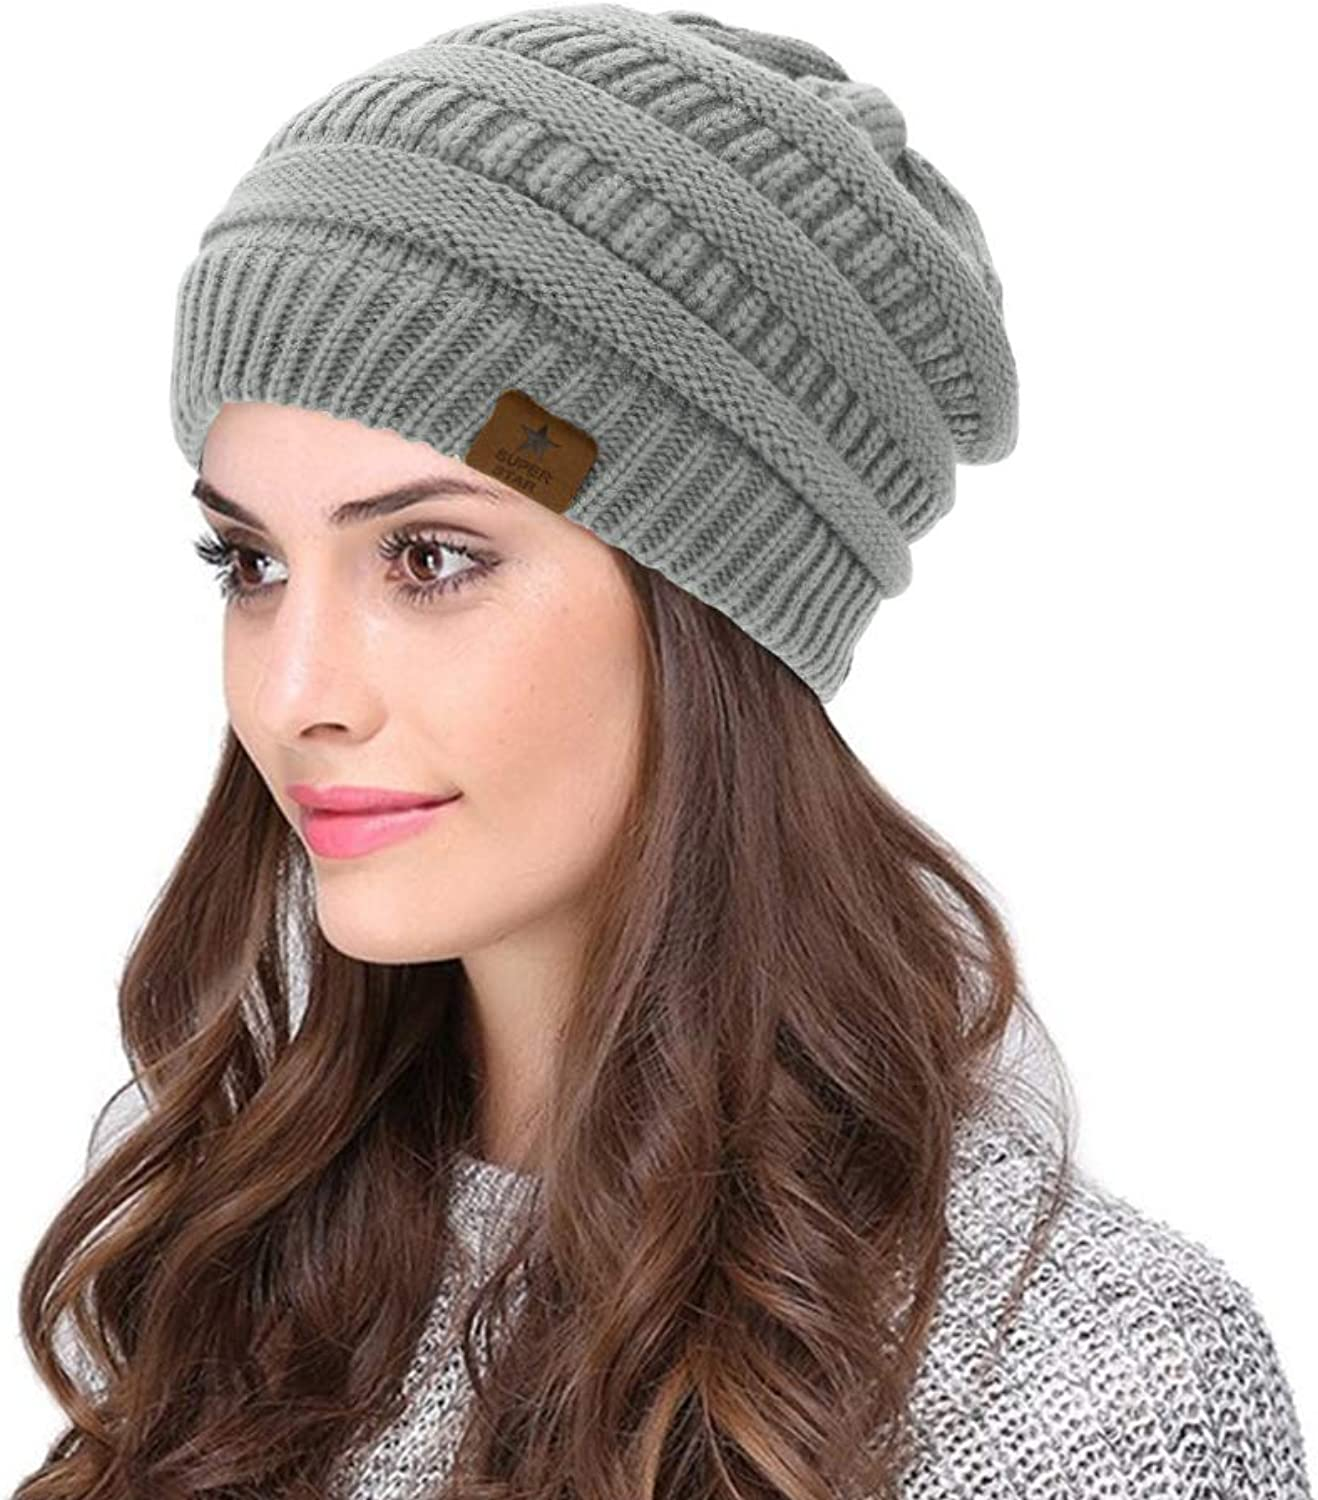 Azue Womens Cable Knit Slouchy Fleece Lined Beanie Winter Warm Thick Hats Skully Caps